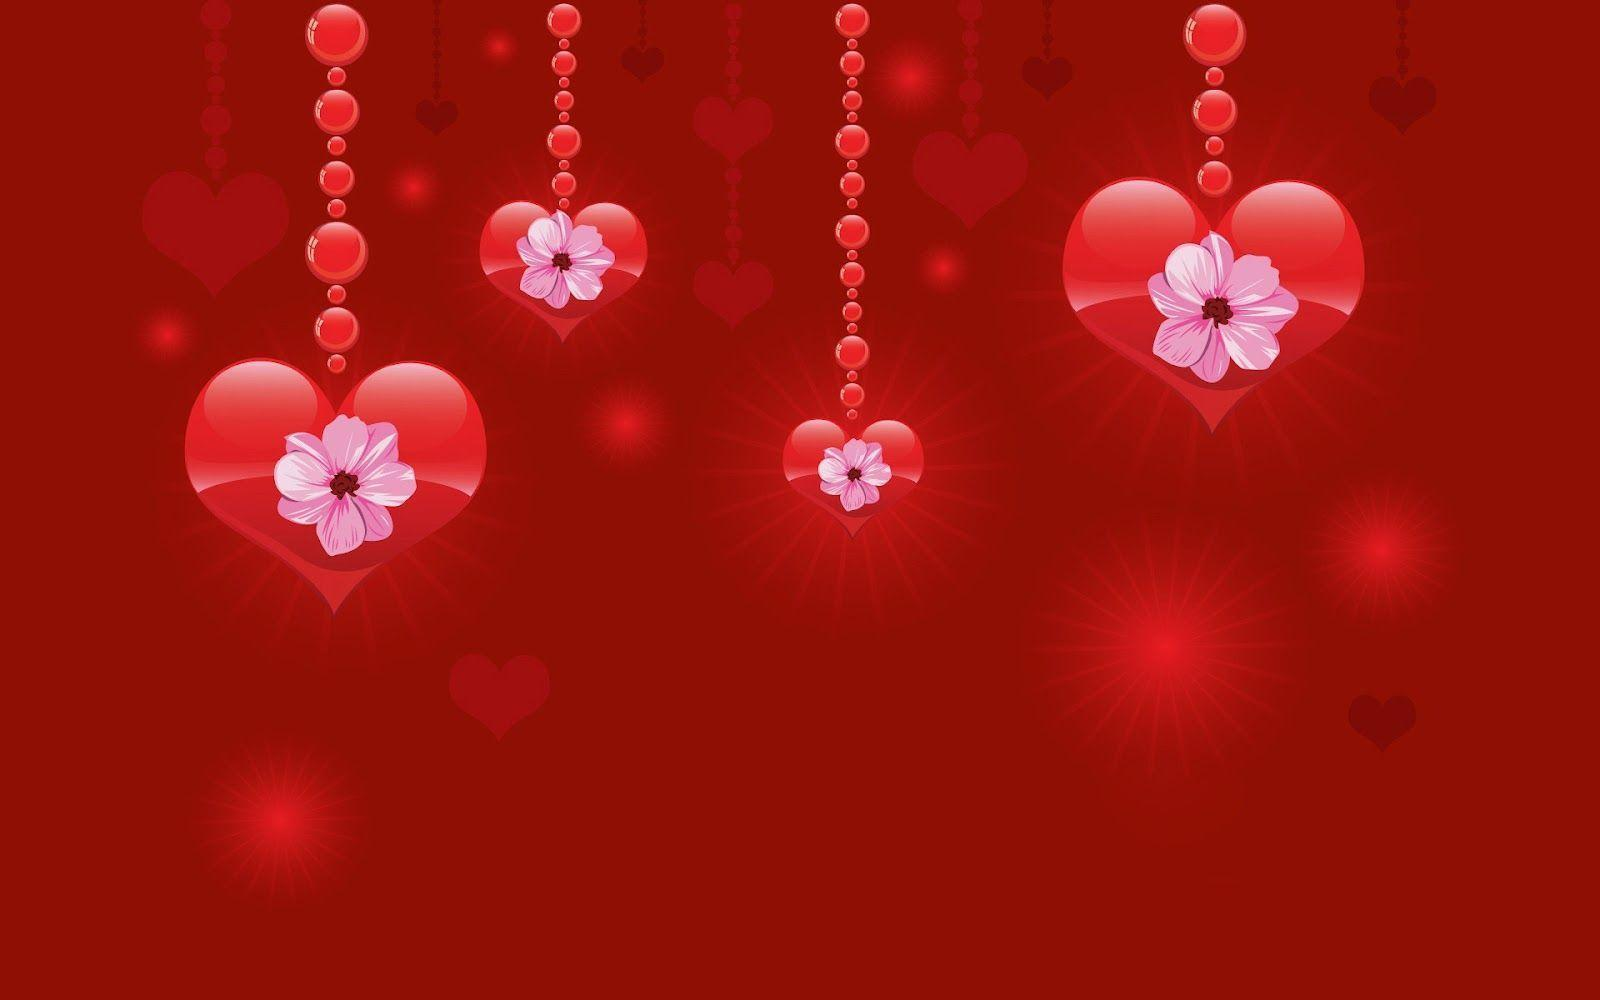 Valentines Day Wallpapers 2013